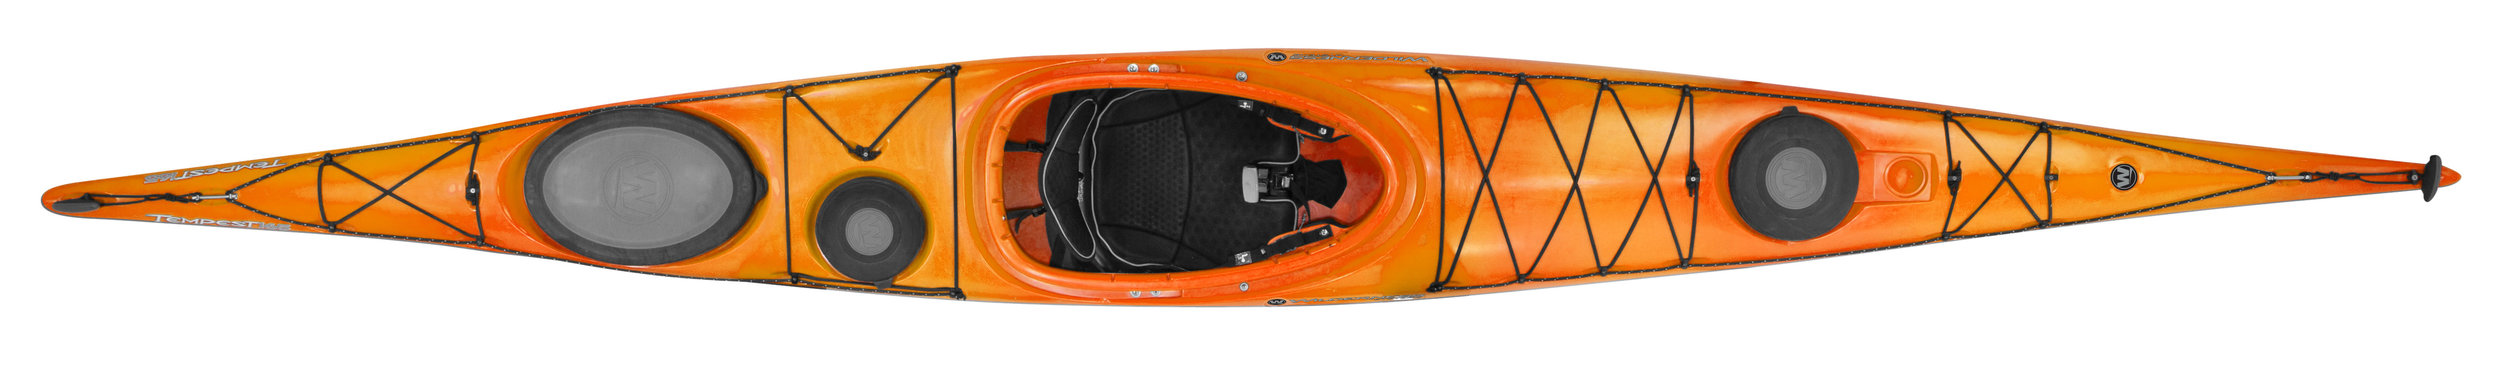 Tempest 165:  British style kayak with a touring orientation. Signature performance, but designed for paddlers with a smaller frame, this touring kayak features a lower deck, narrow beam, and slightly shorter length.